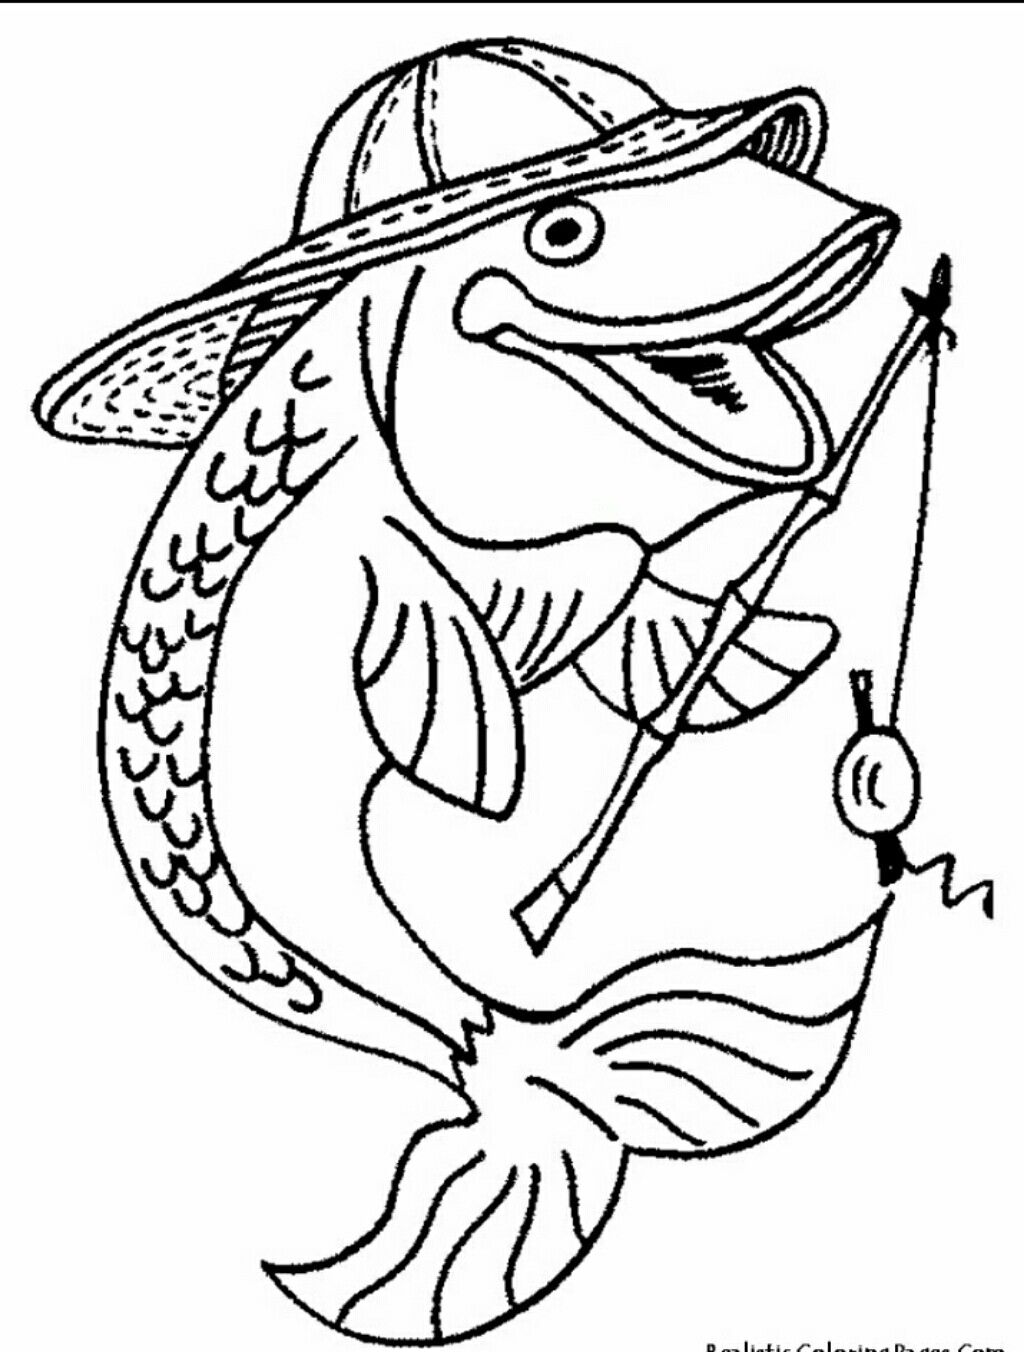 The Quick Fish Coloring Sheet Top 25 Free Printable Koi Pages Online Awesome Ideas